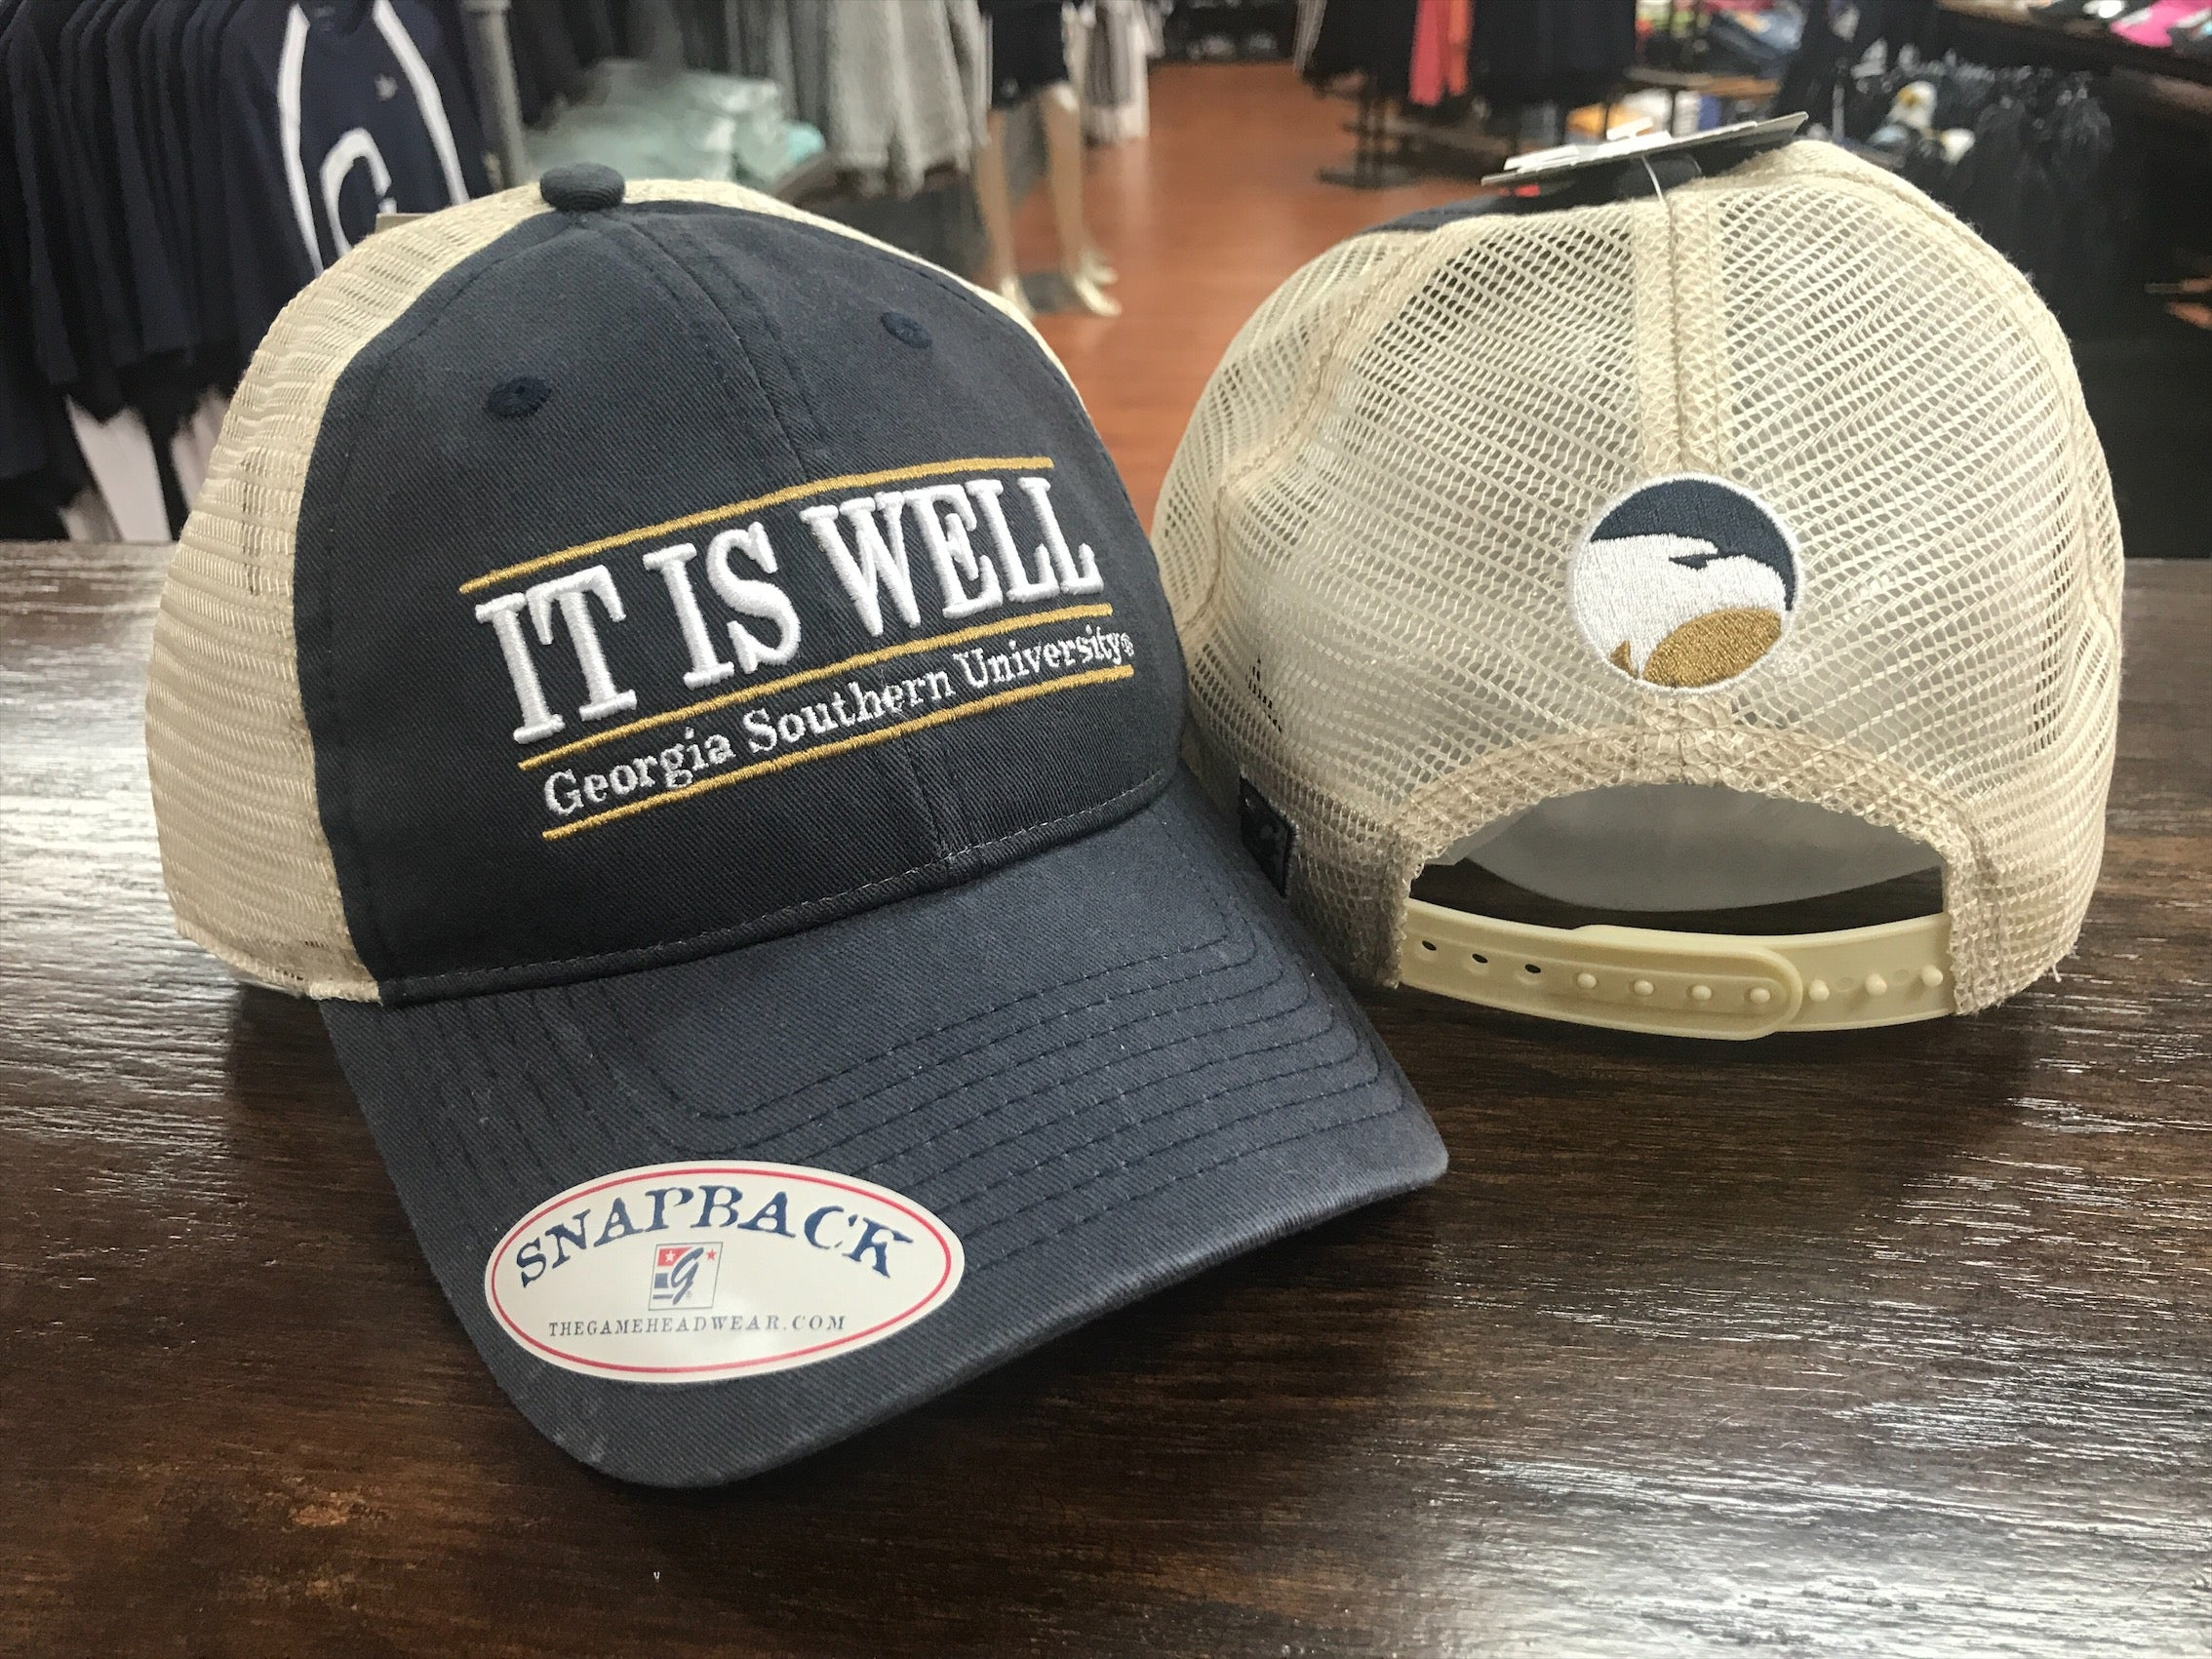 IT IS WELL Classic Bar Design - Blue and Tan Trucker Cap